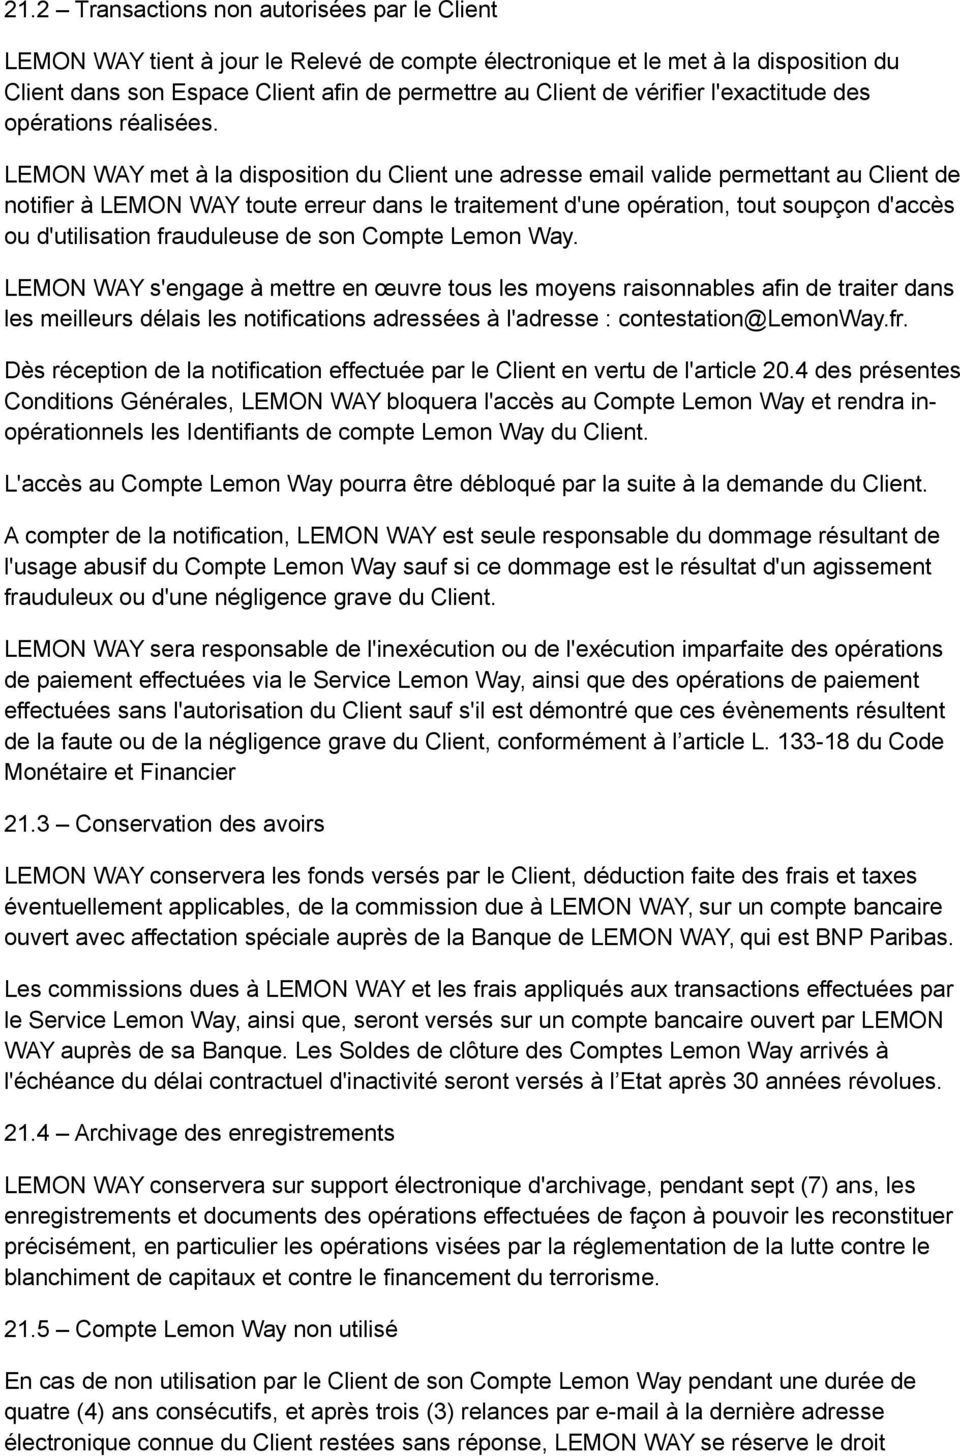 LEMON WAY met à la disposition du Client une adresse email valide permettant au Client de notifier à LEMON WAY toute erreur dans le traitement d'une opération, tout soupçon d'accès ou d'utilisation